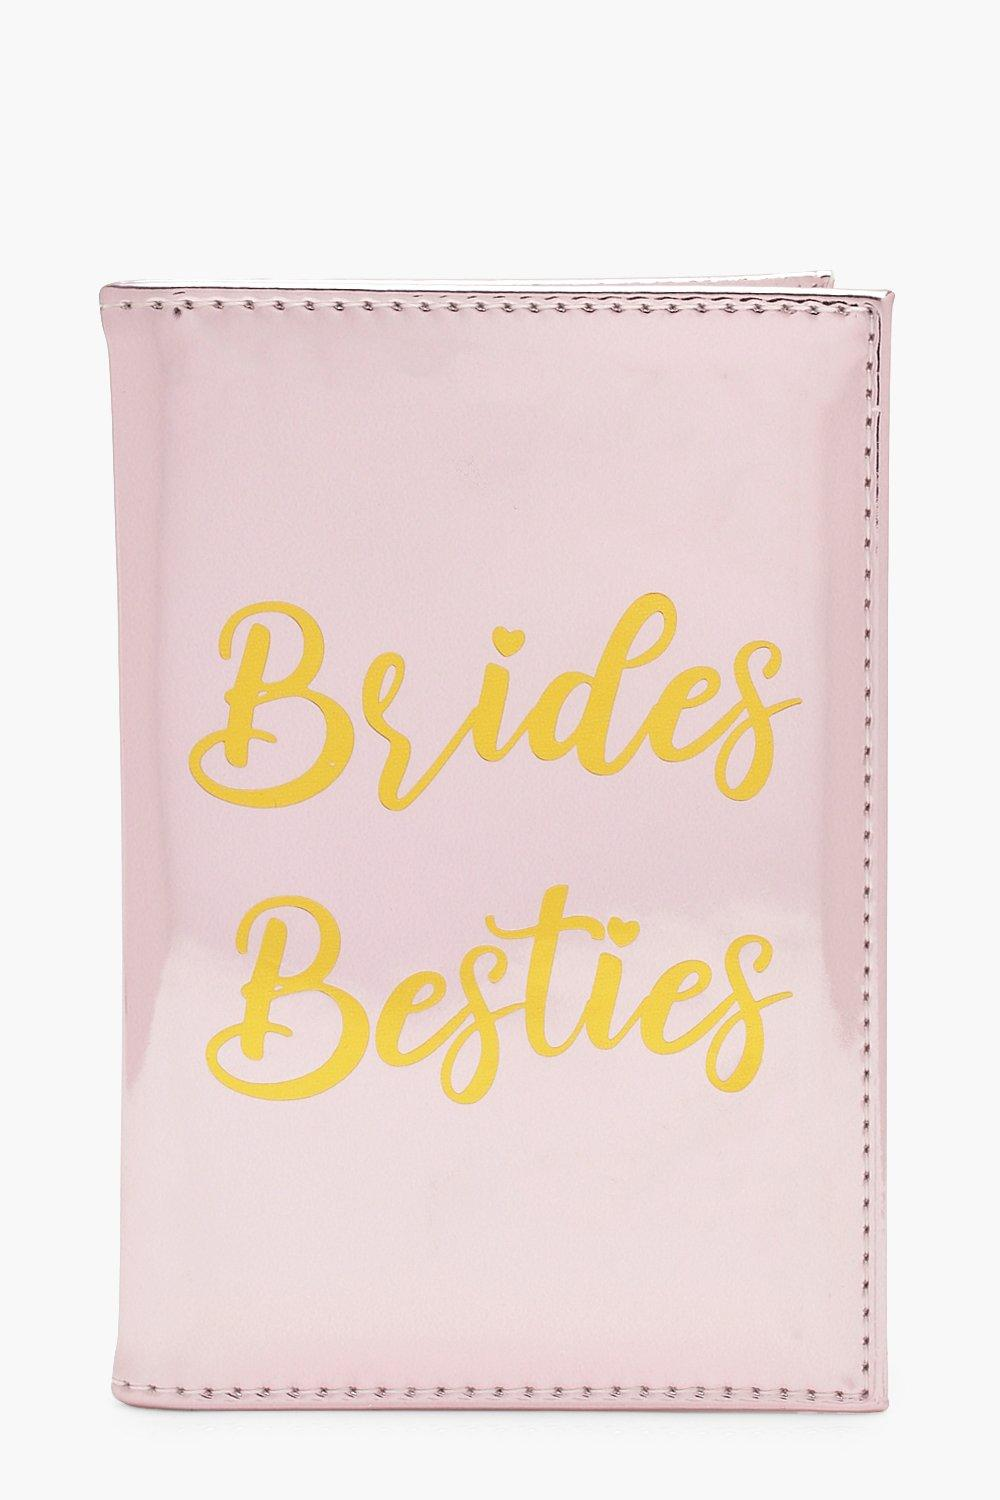 Brides Besties Metallic Passport Holder